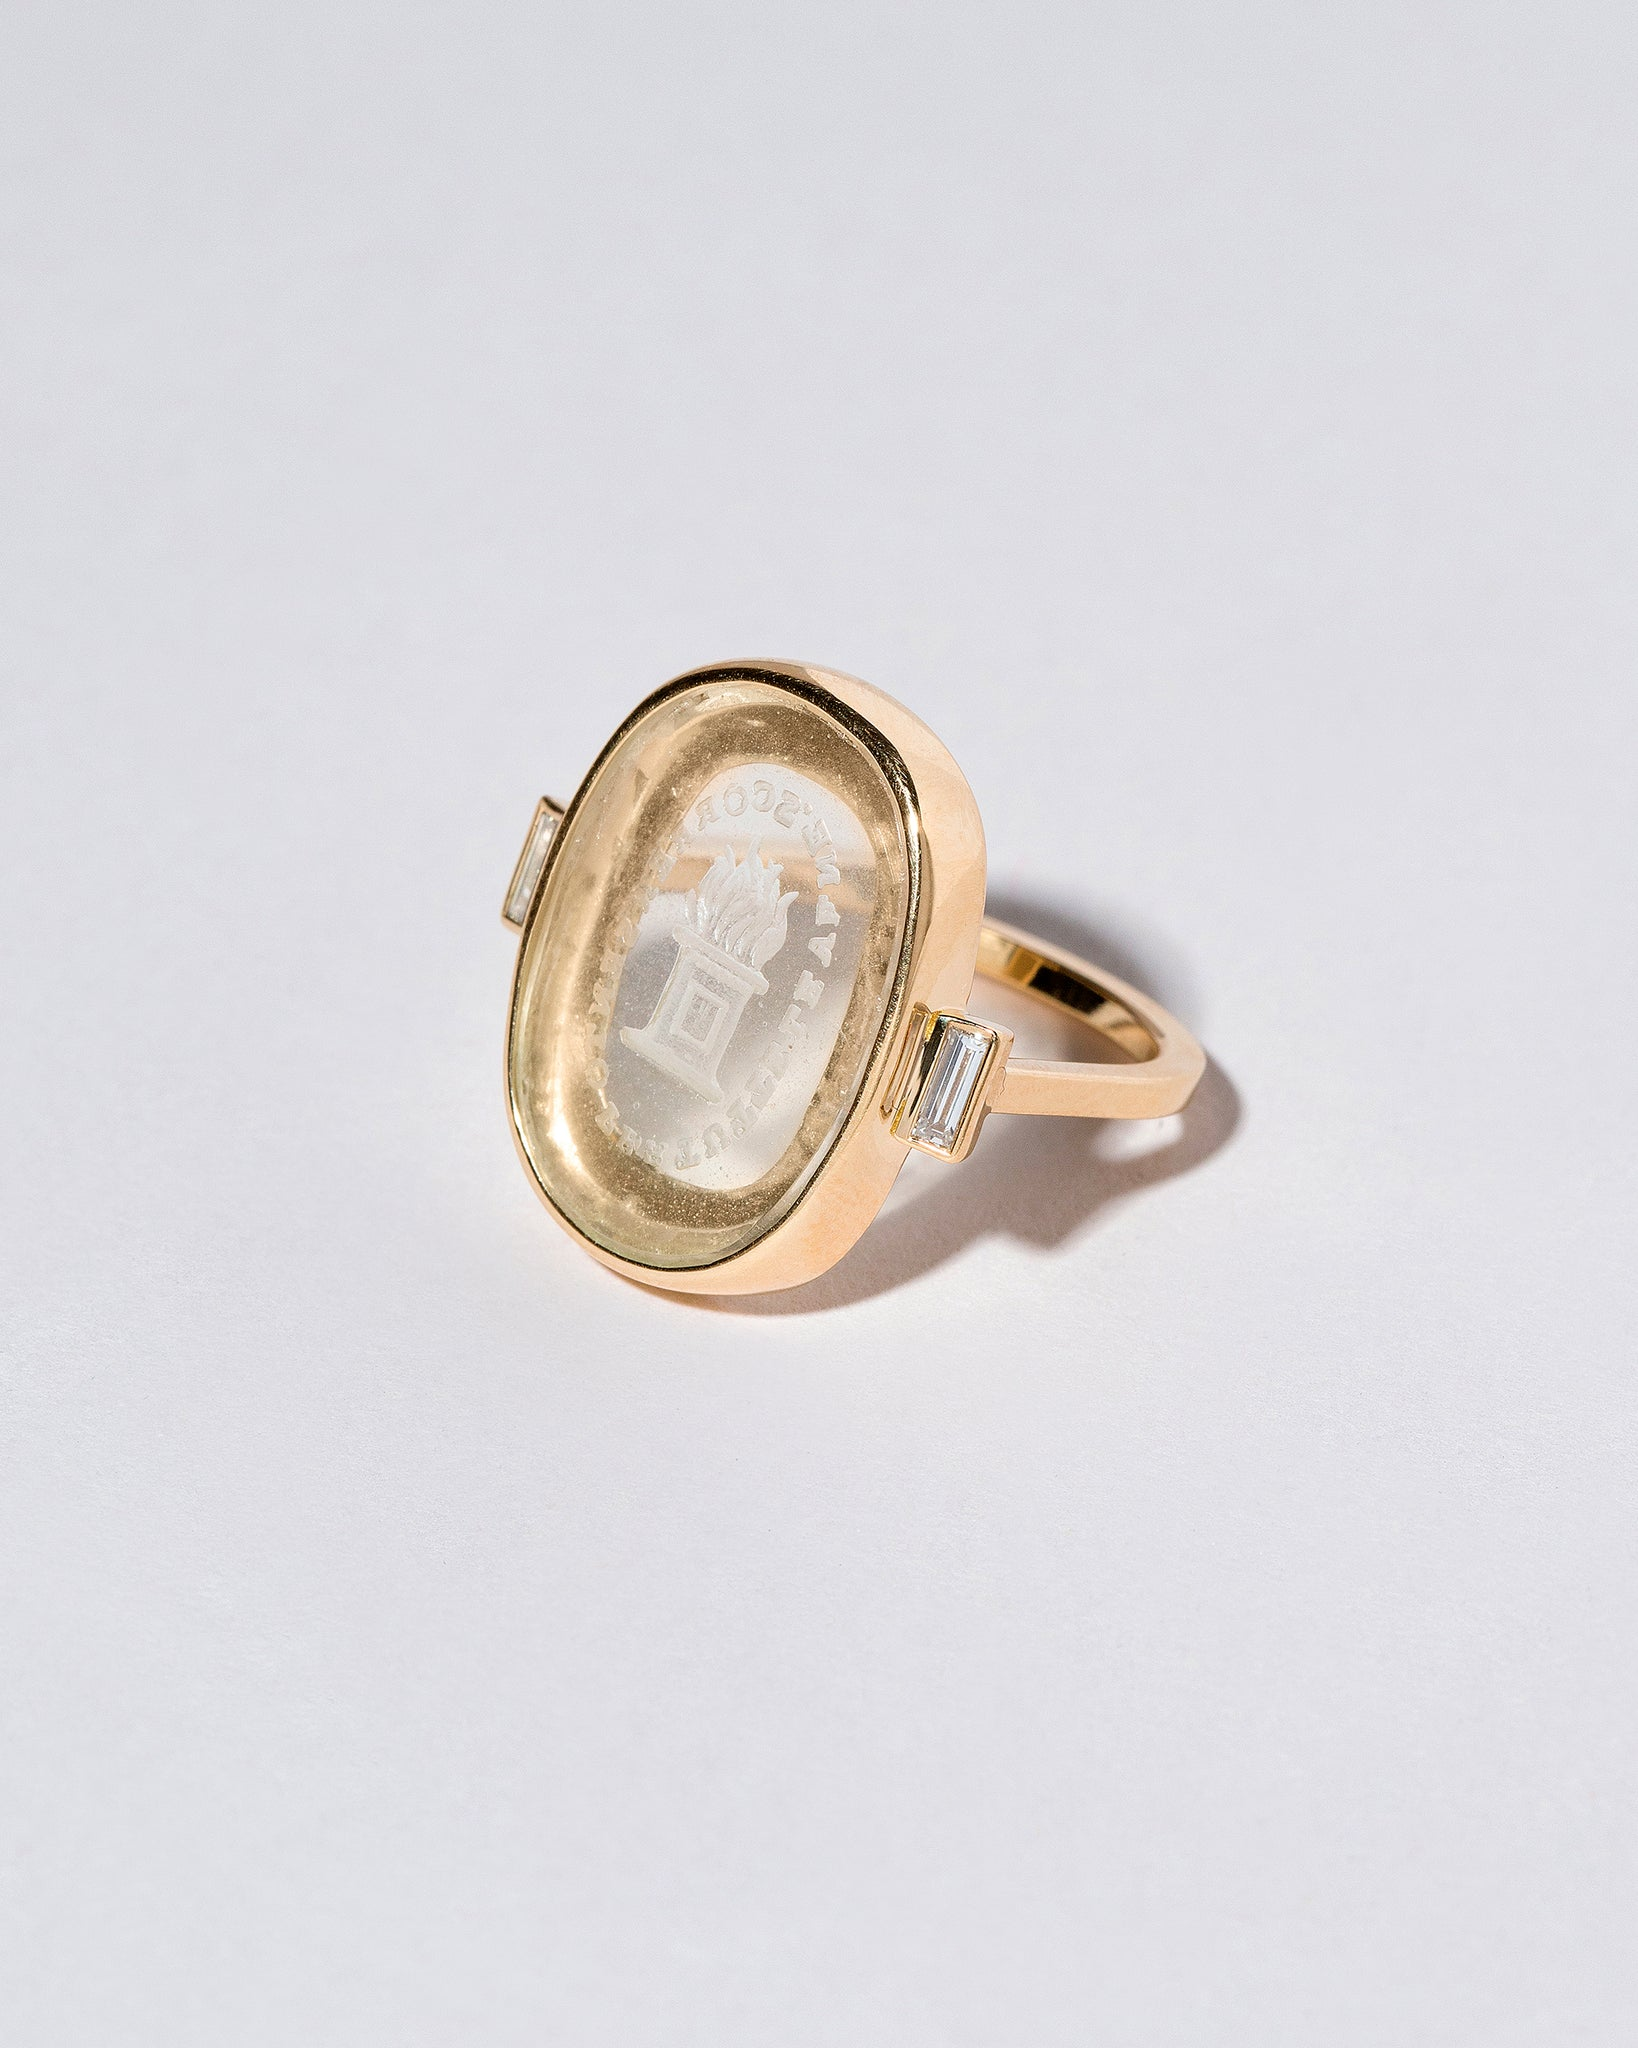 Passion Intaglio Seal Ring